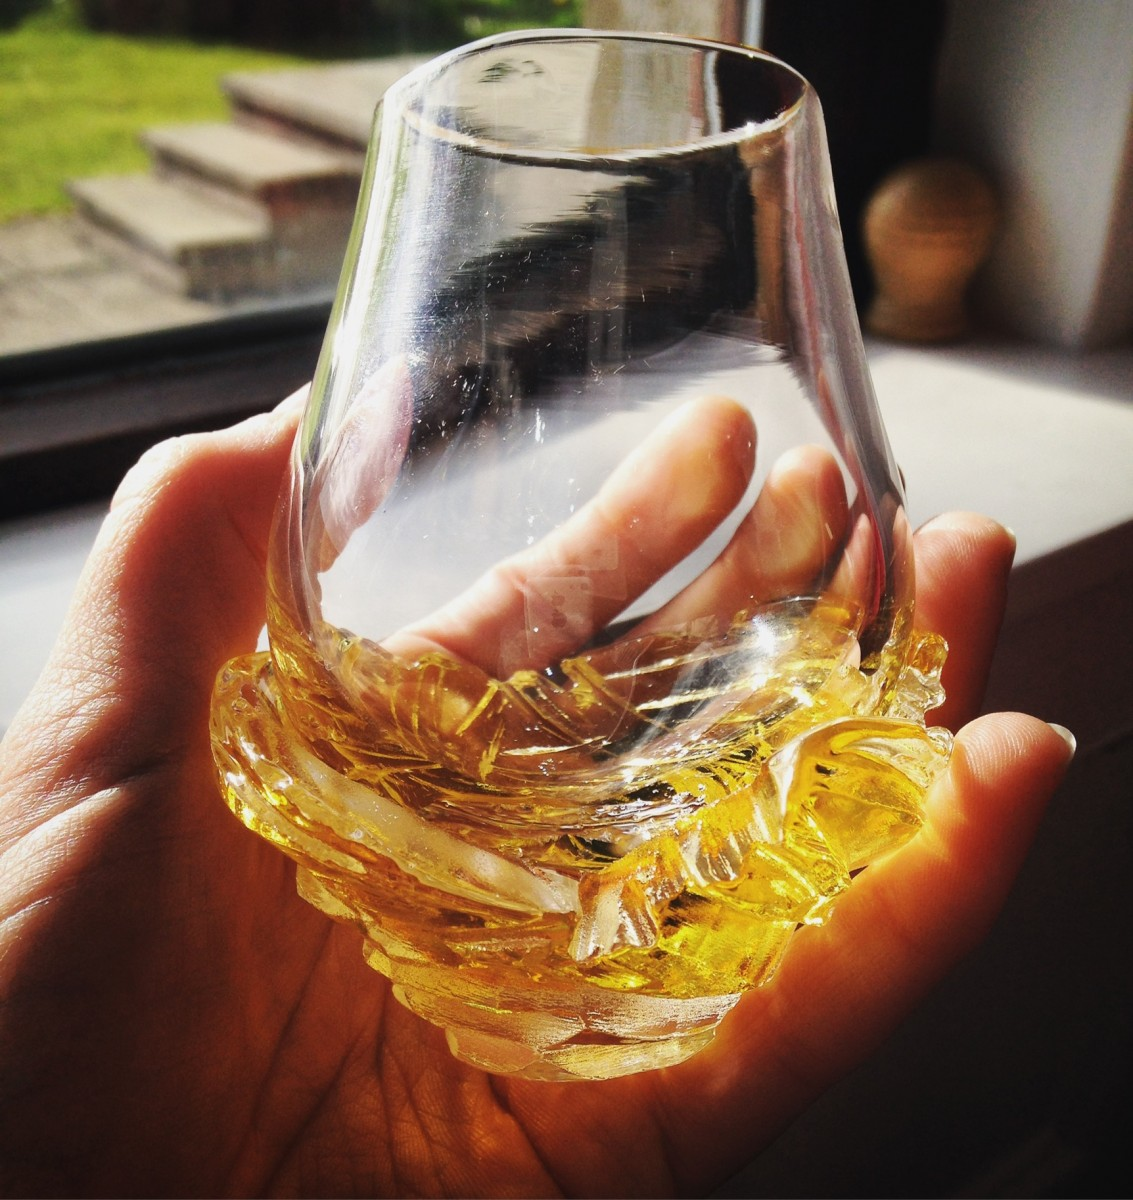 Hand holding a whisky glass with a carved amber base